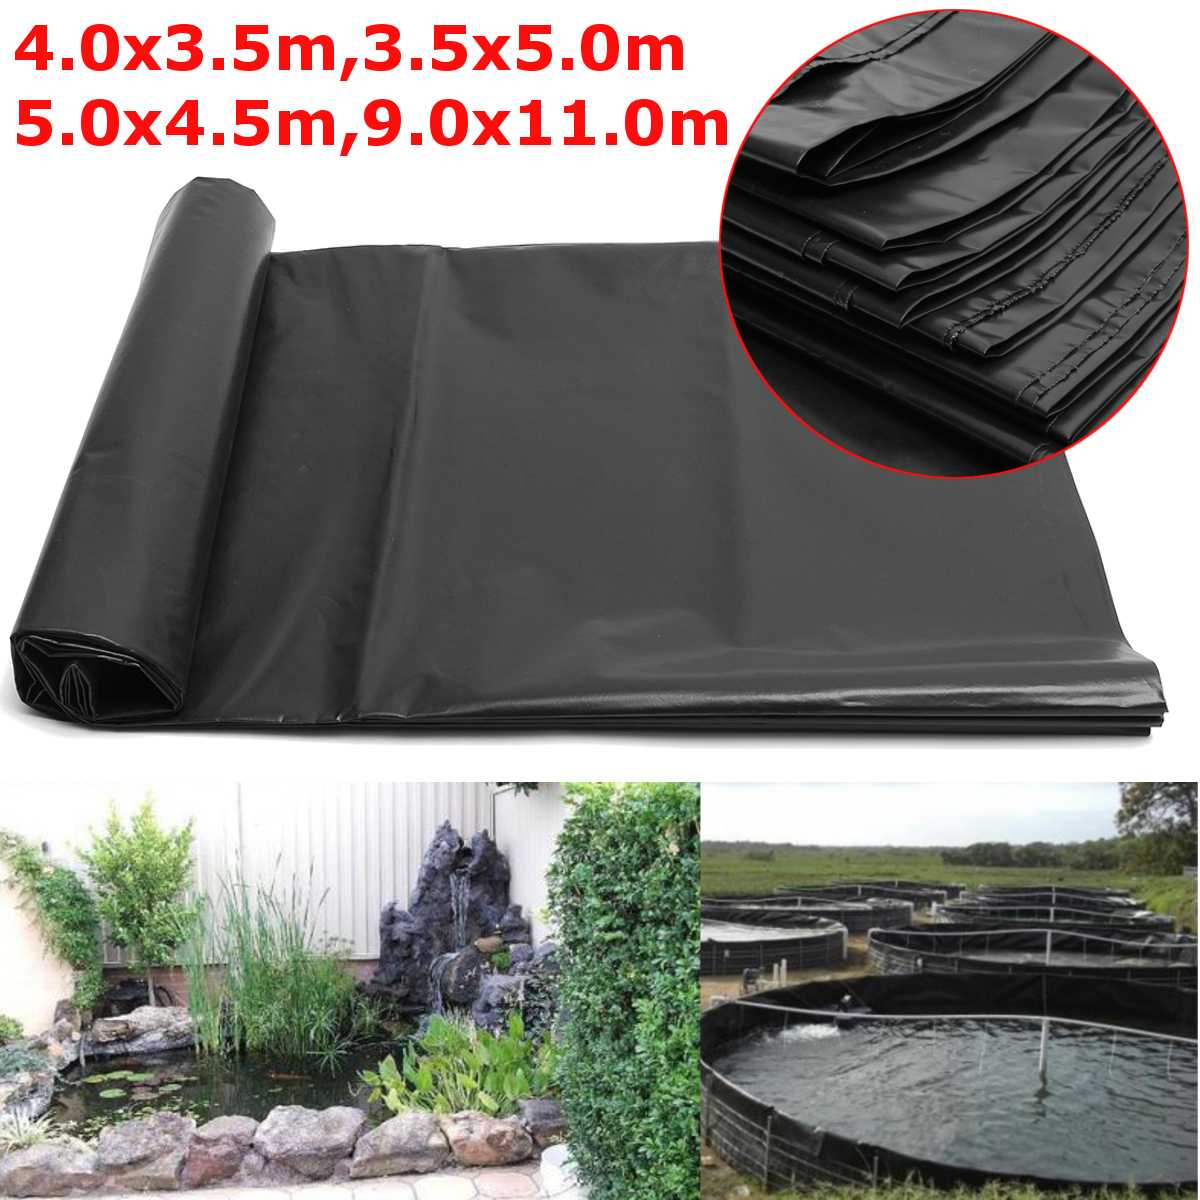 Cloth Liner HDPE Pool-Pond Garden-Pool-Reinforced Home Waterproof Black 4-Size Landscaping